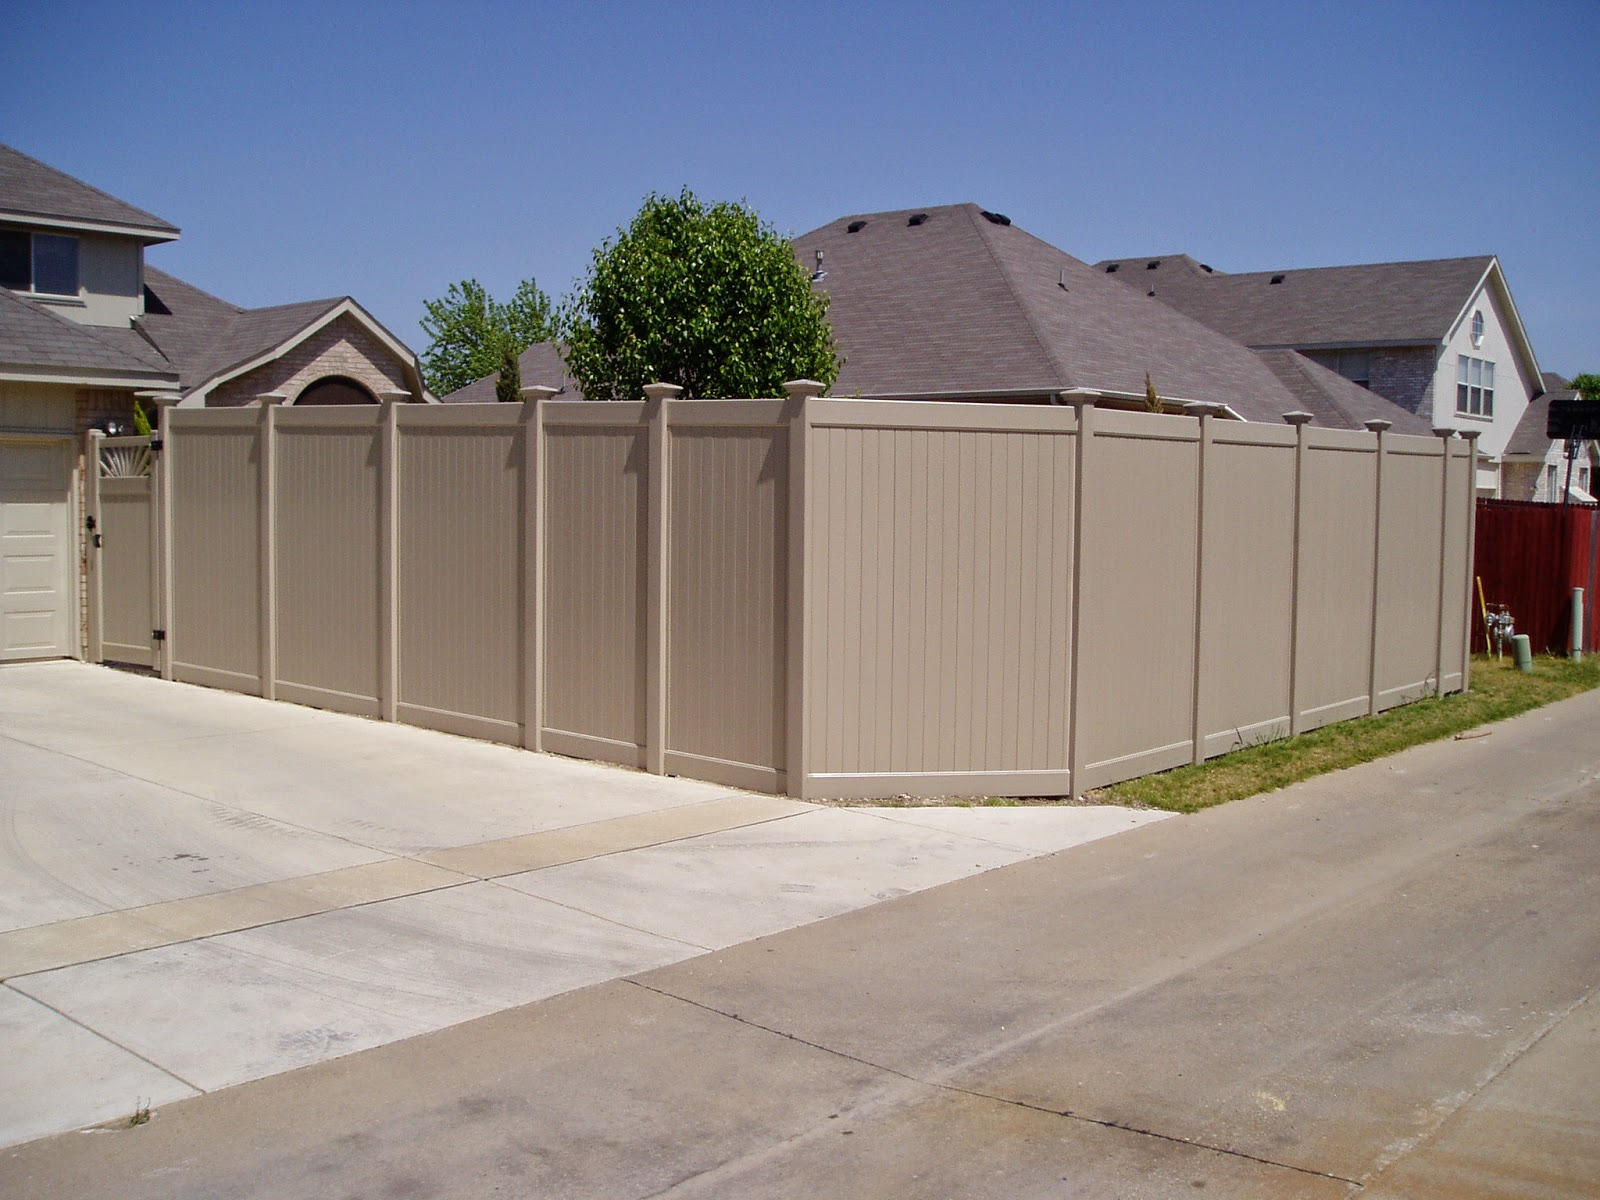 Vinyl Privacy Fence Texas